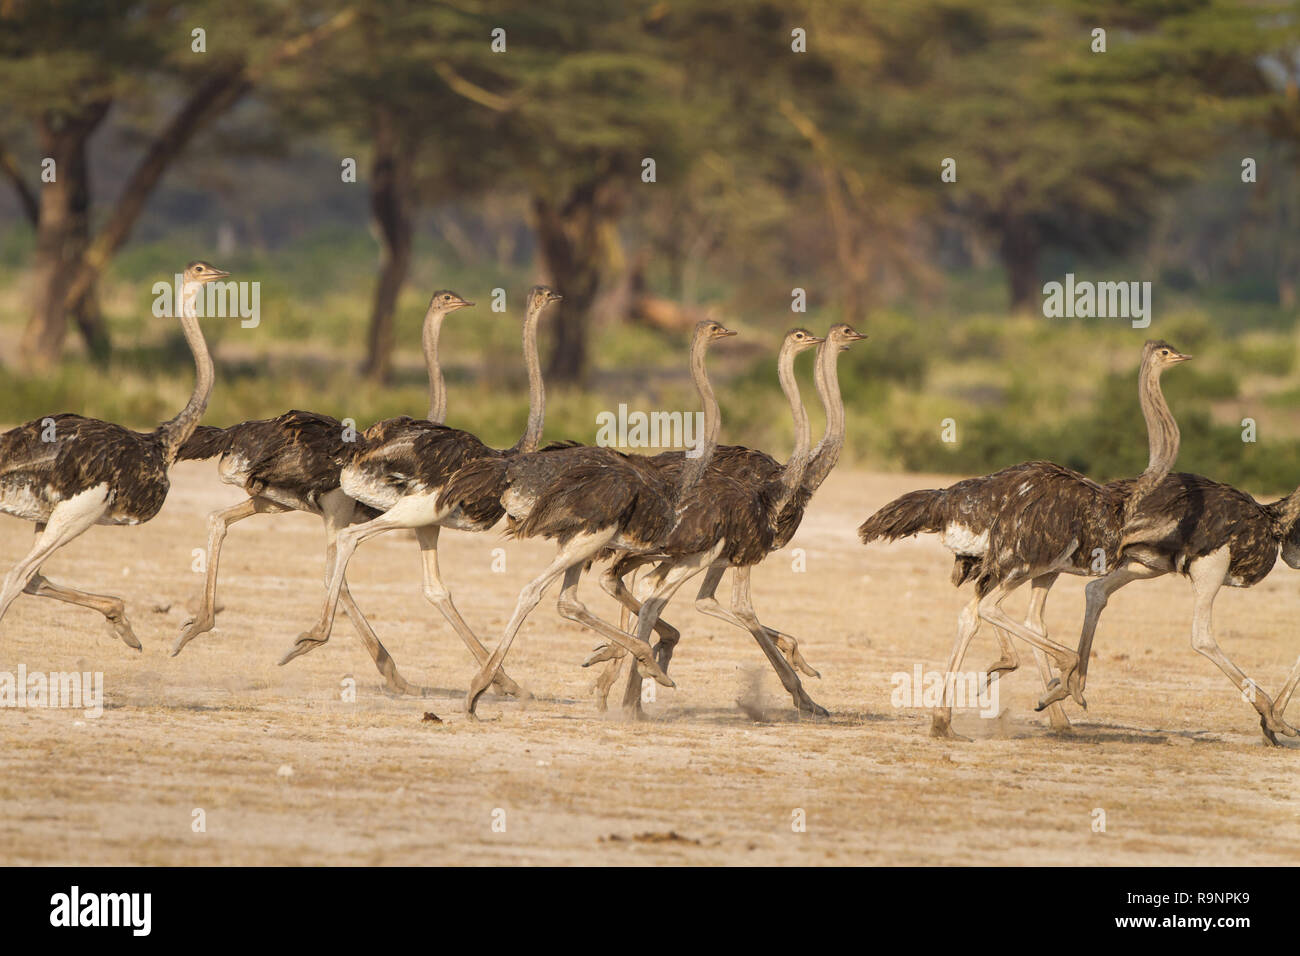 Flock of ostrich run together fleeing a predator in Tanzania, Africa - Stock Image